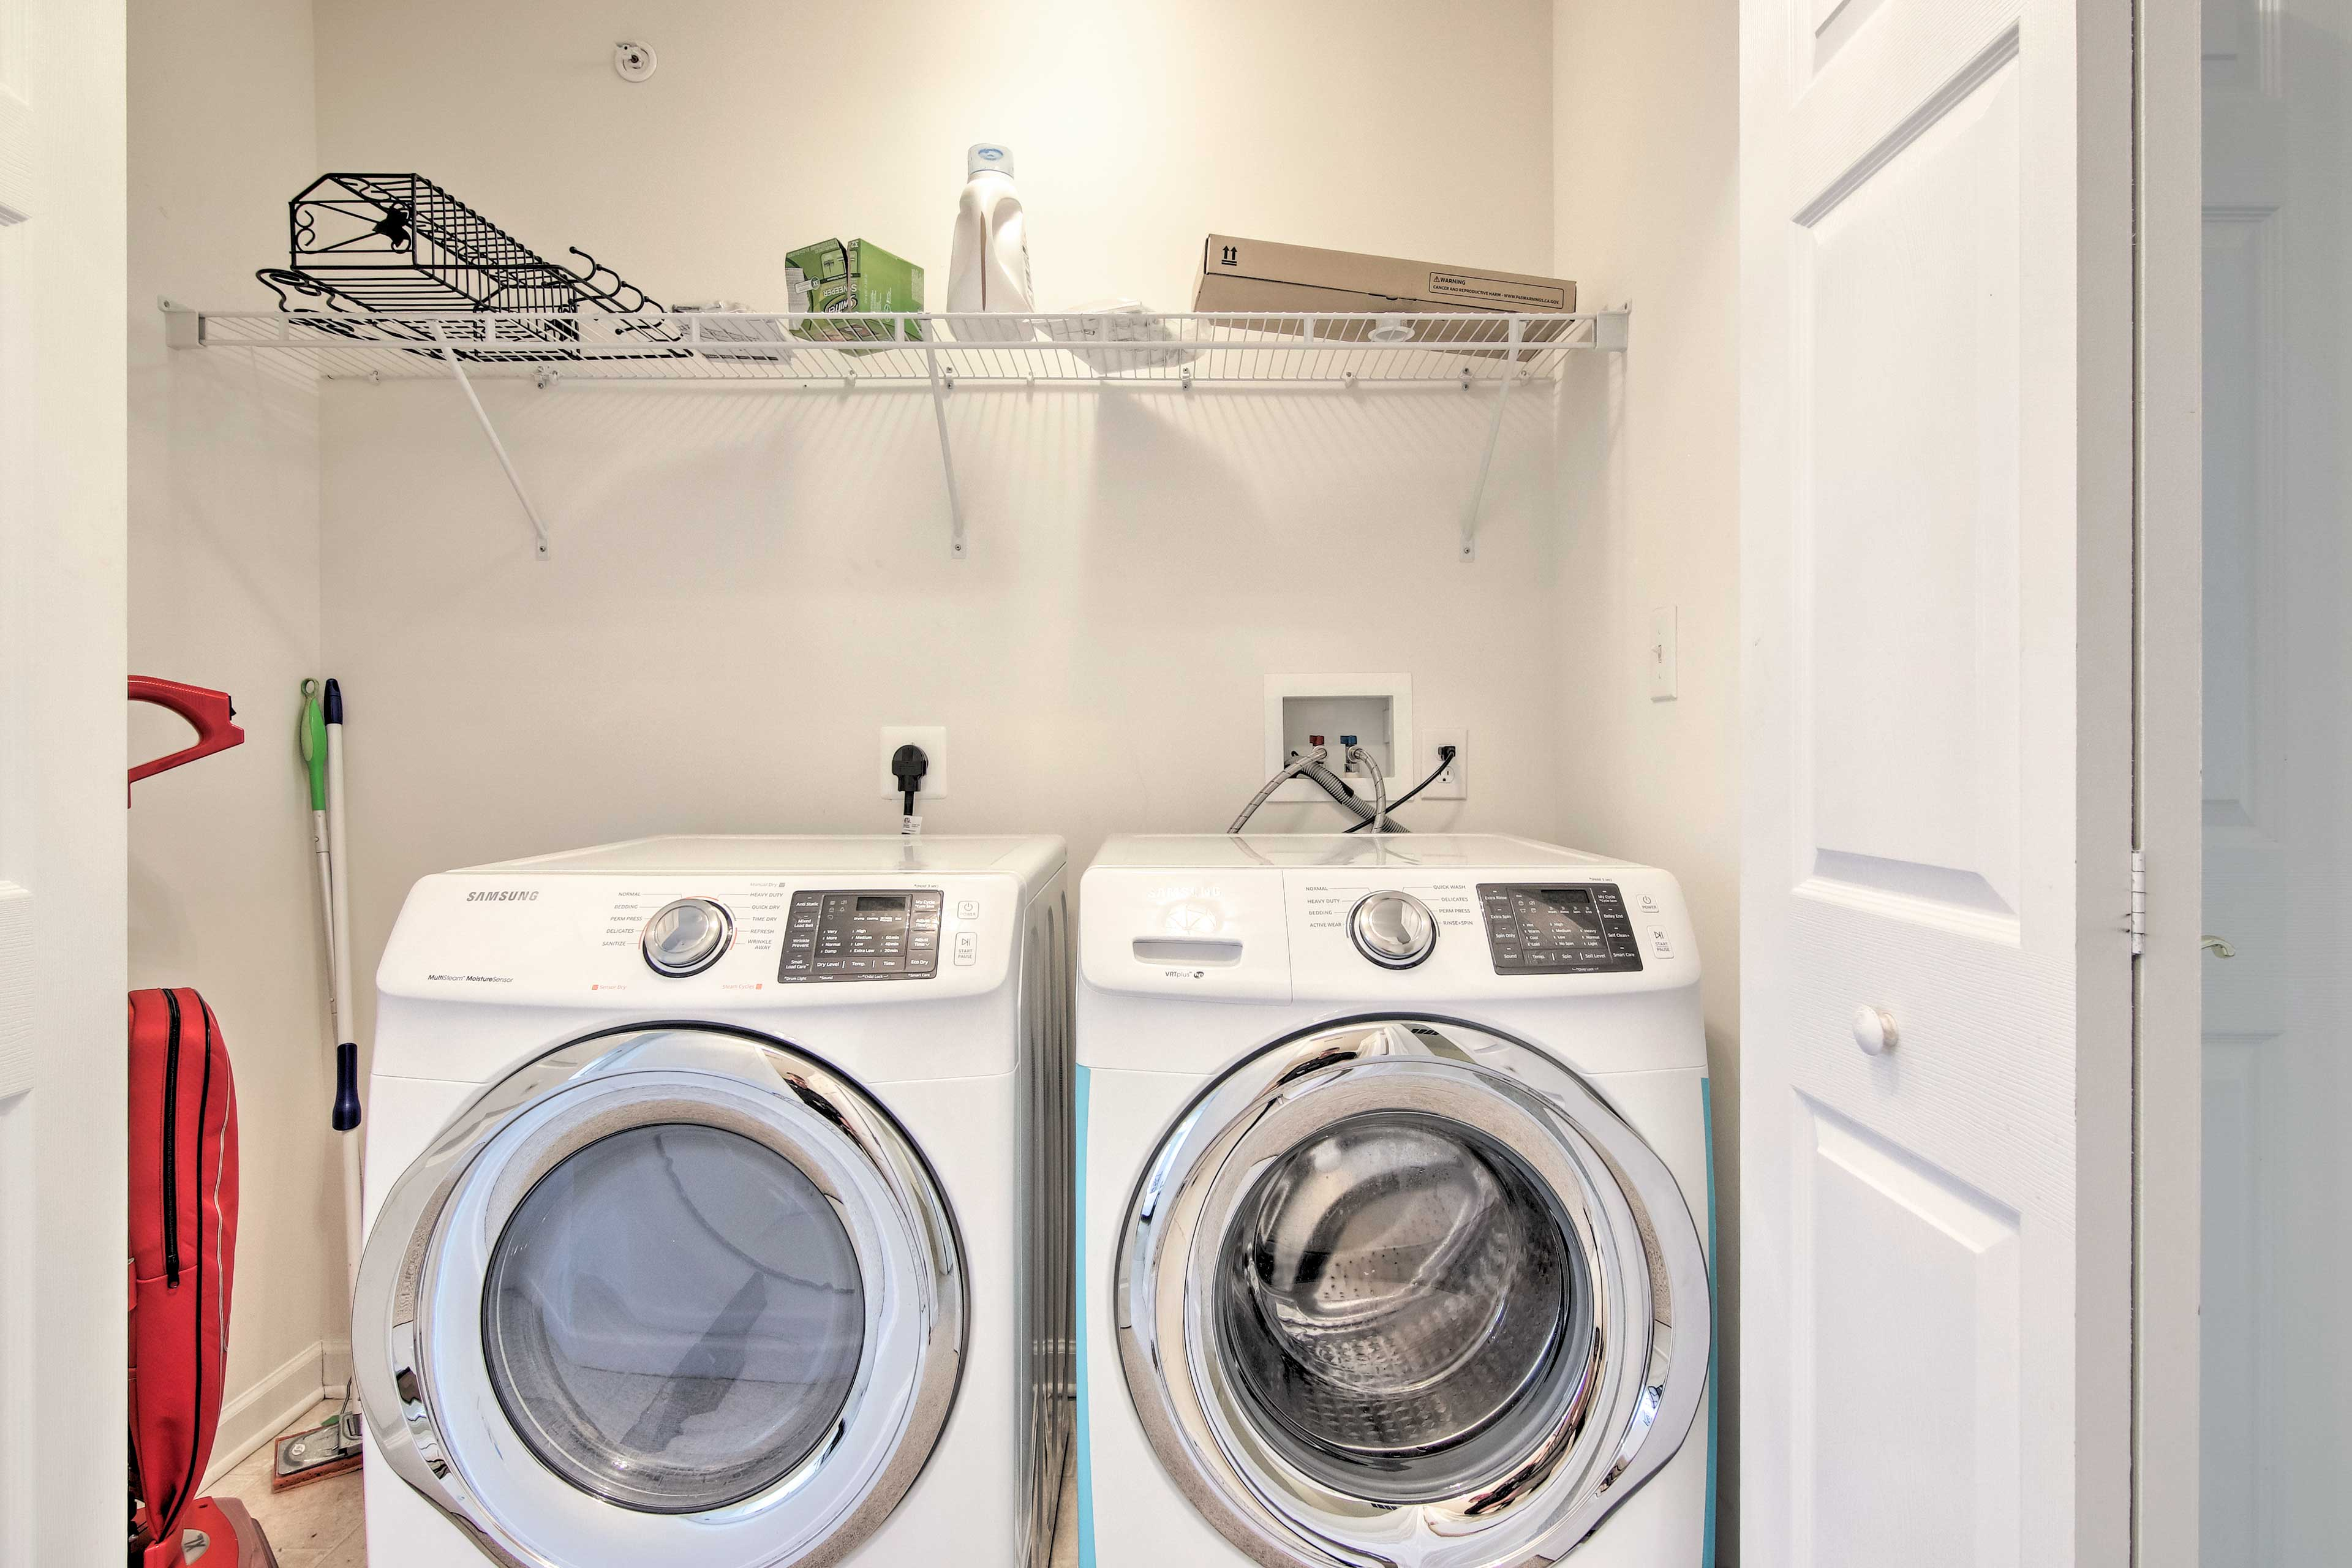 Keep your bathing suit fresh with the in-unit washer/dryer.